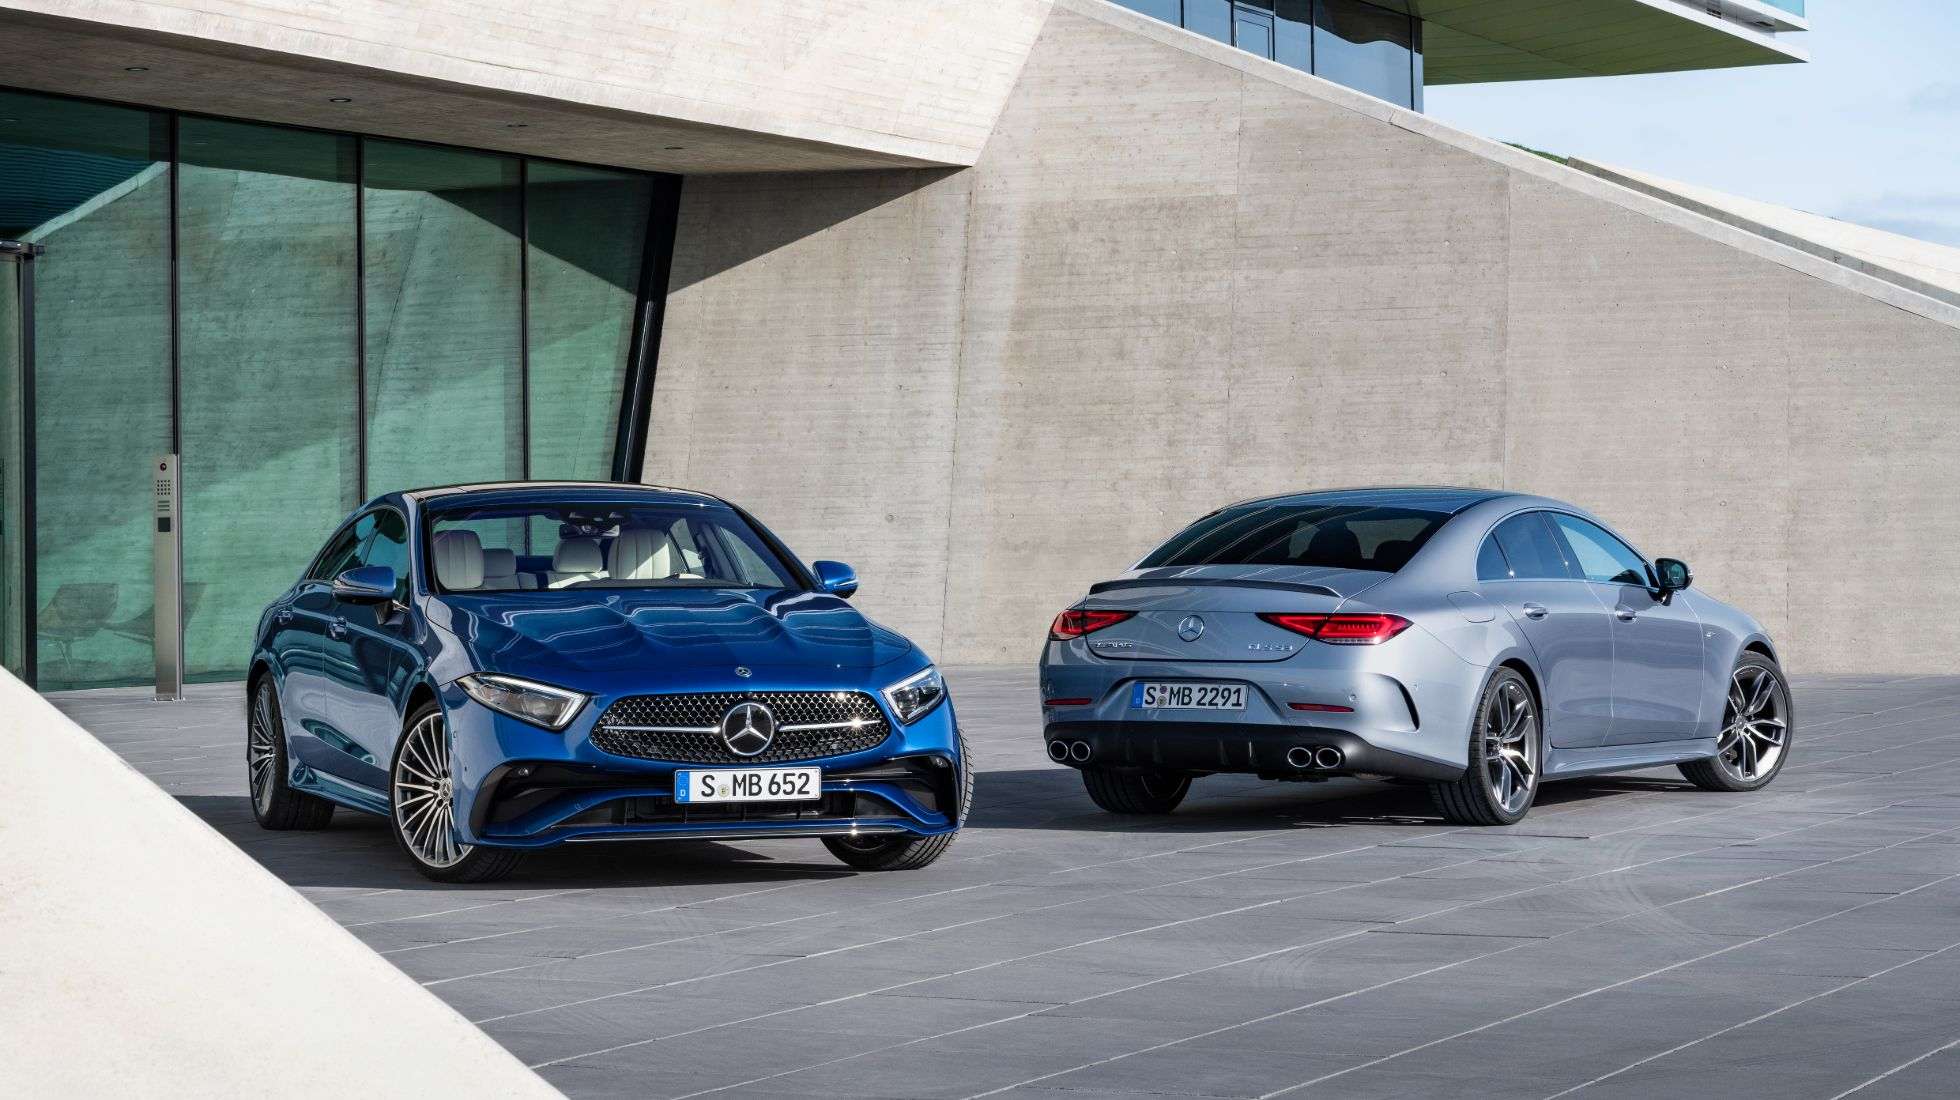 Merc's CLS receives styling tweaks for 2021